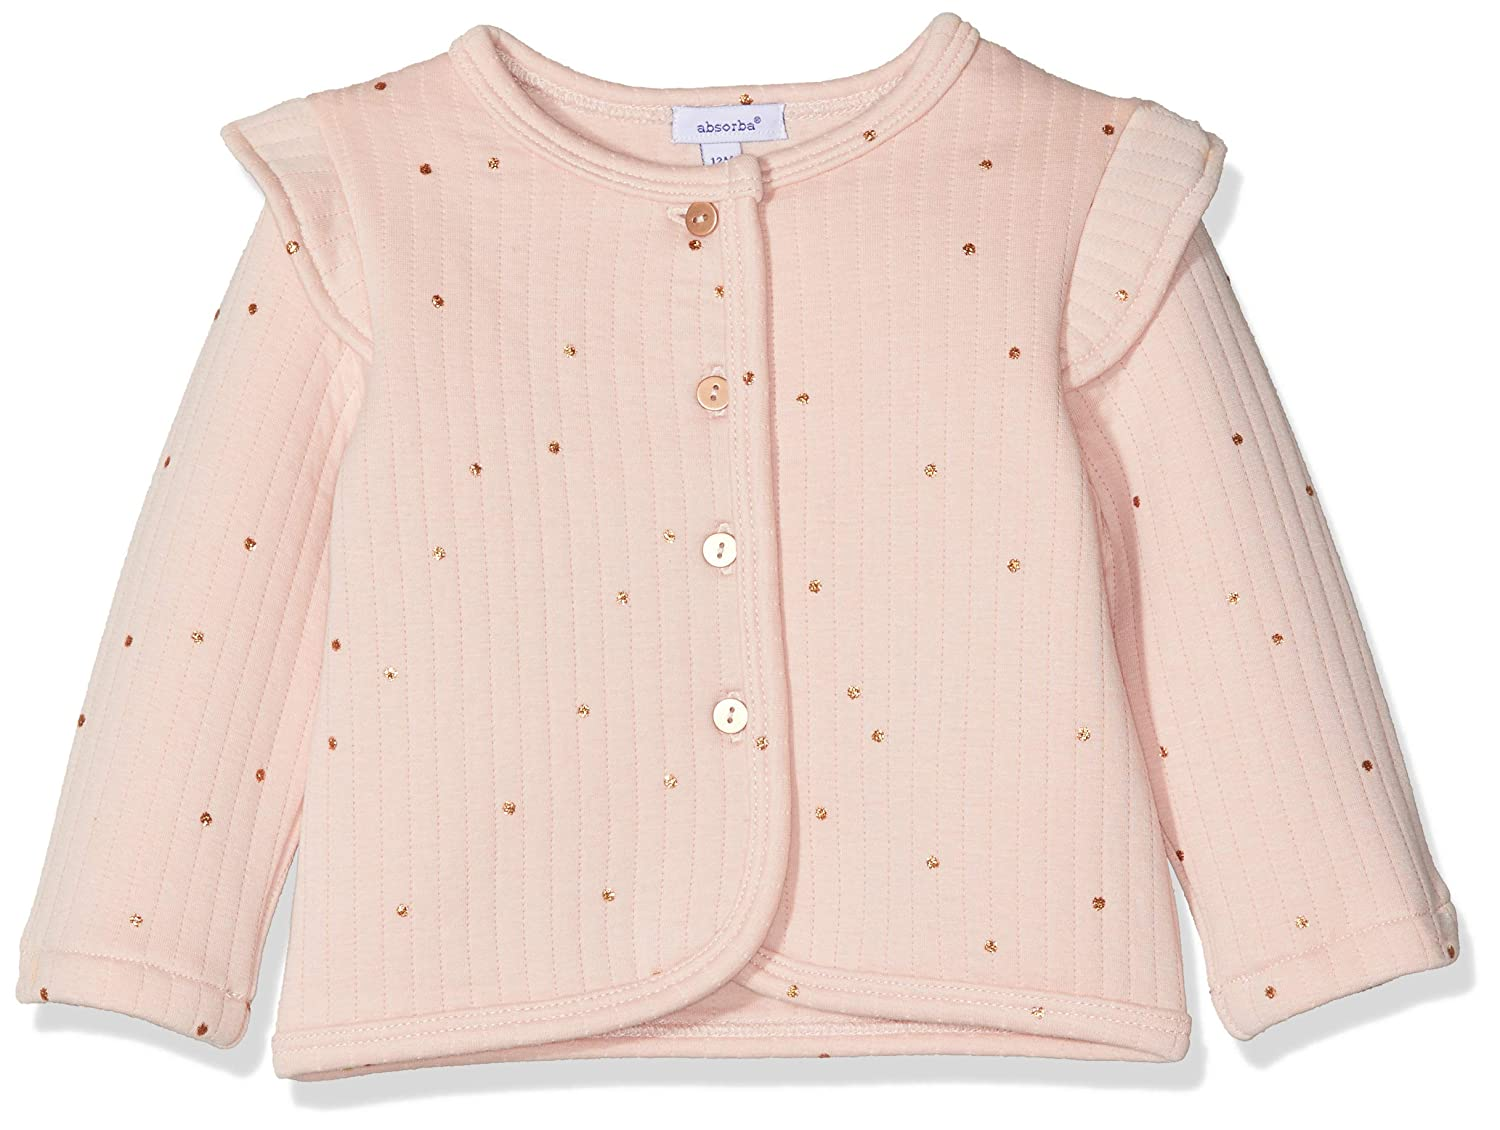 Absorba Boutique Baby Girls' Cardigan 9M17002